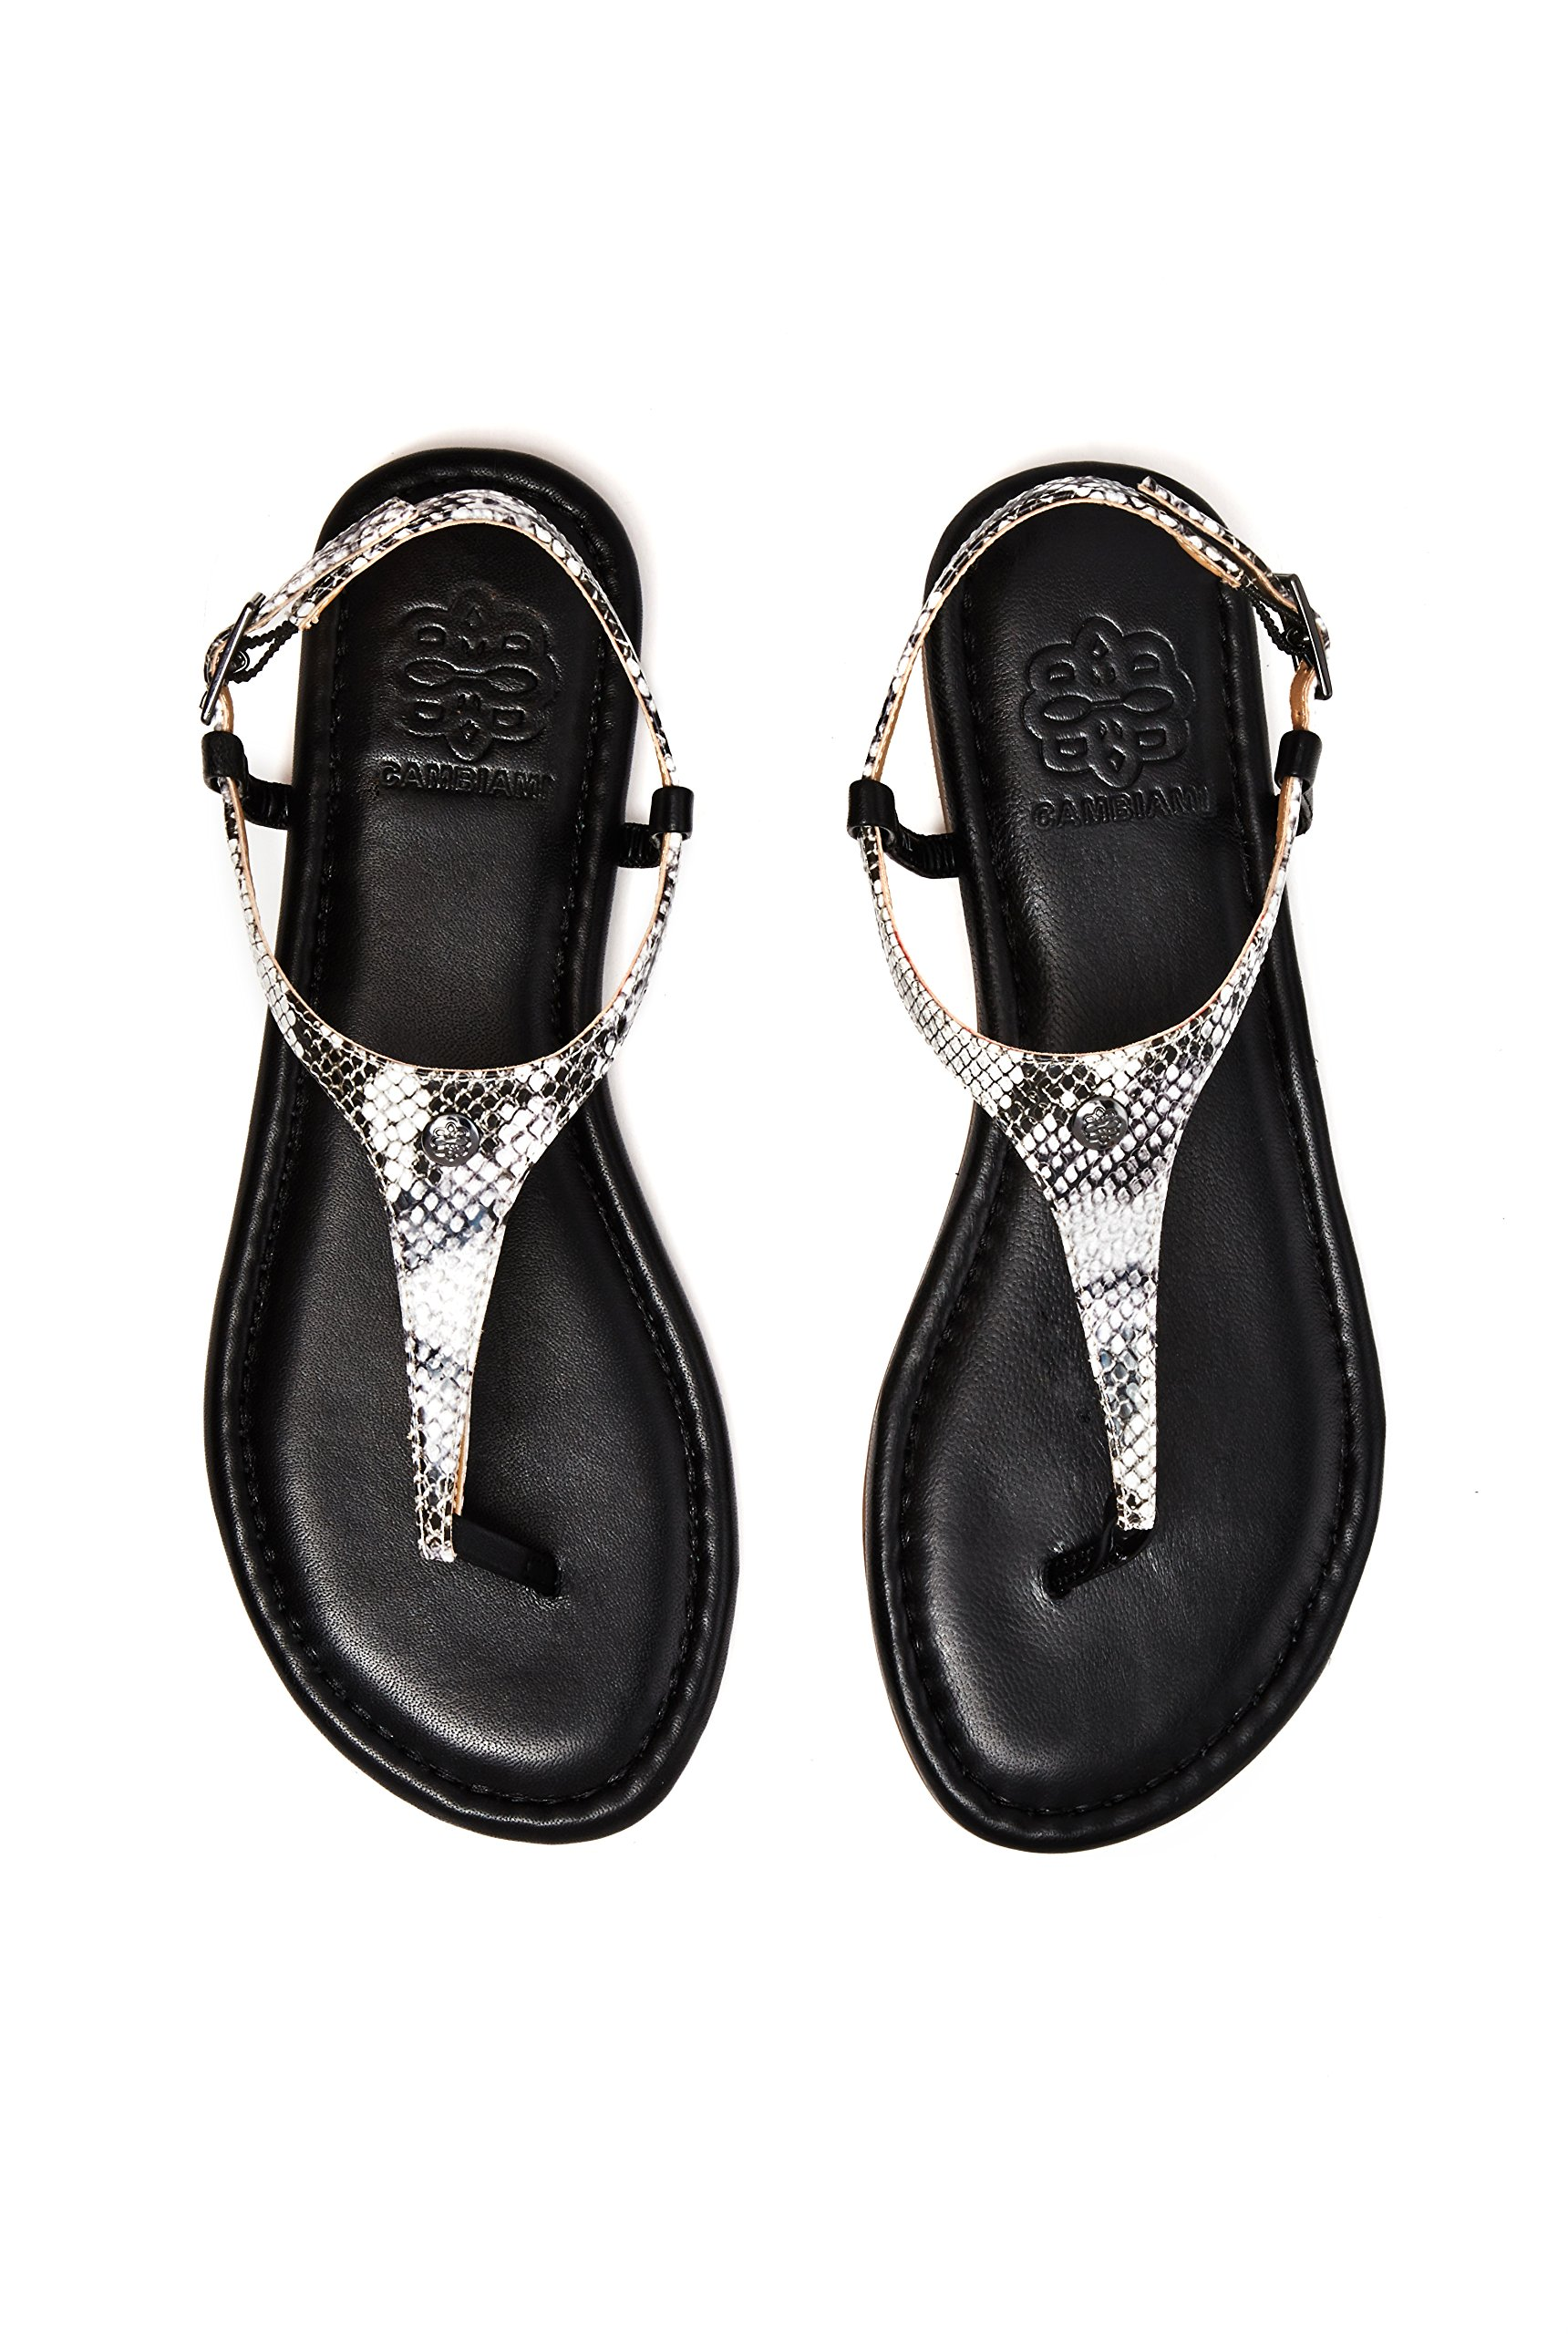 CAMBIAMI Black Leather T-Strap Slingback Flat Sandals - Includes Three Interchangeable Strap Sets (Black, Pewter, Snake Print) & Black Sole - Stylish & Comfortable - Women's Size 8 by CAMBIAMI (Image #7)